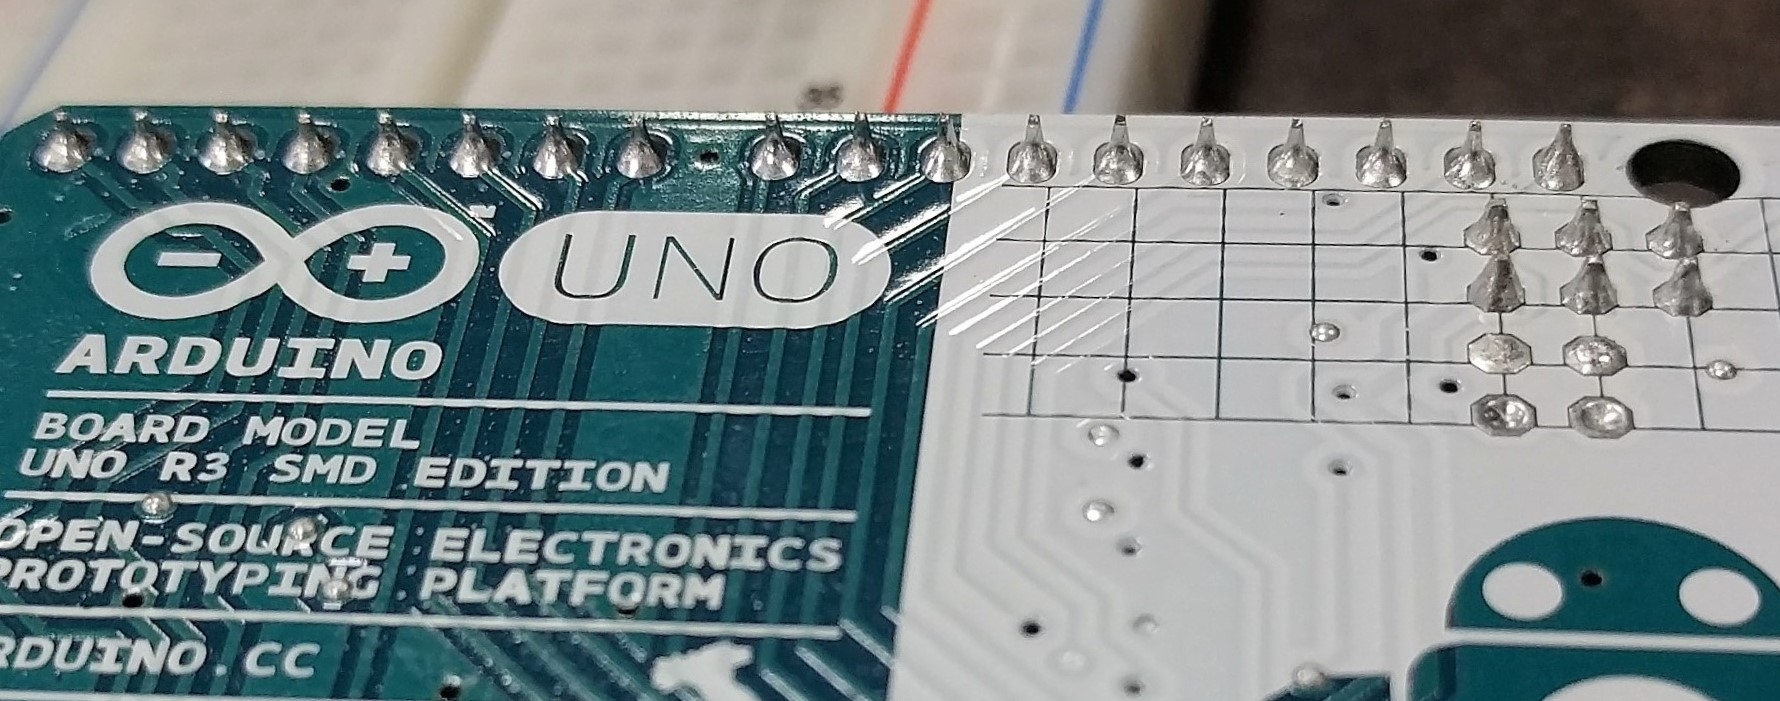 Main Basic Electronics Arduino Uno Calendar Agenda List City Projects Soldering Leds And Finally To Programming With Bring Your Own Designs Work On Or Practice Our Starter Series